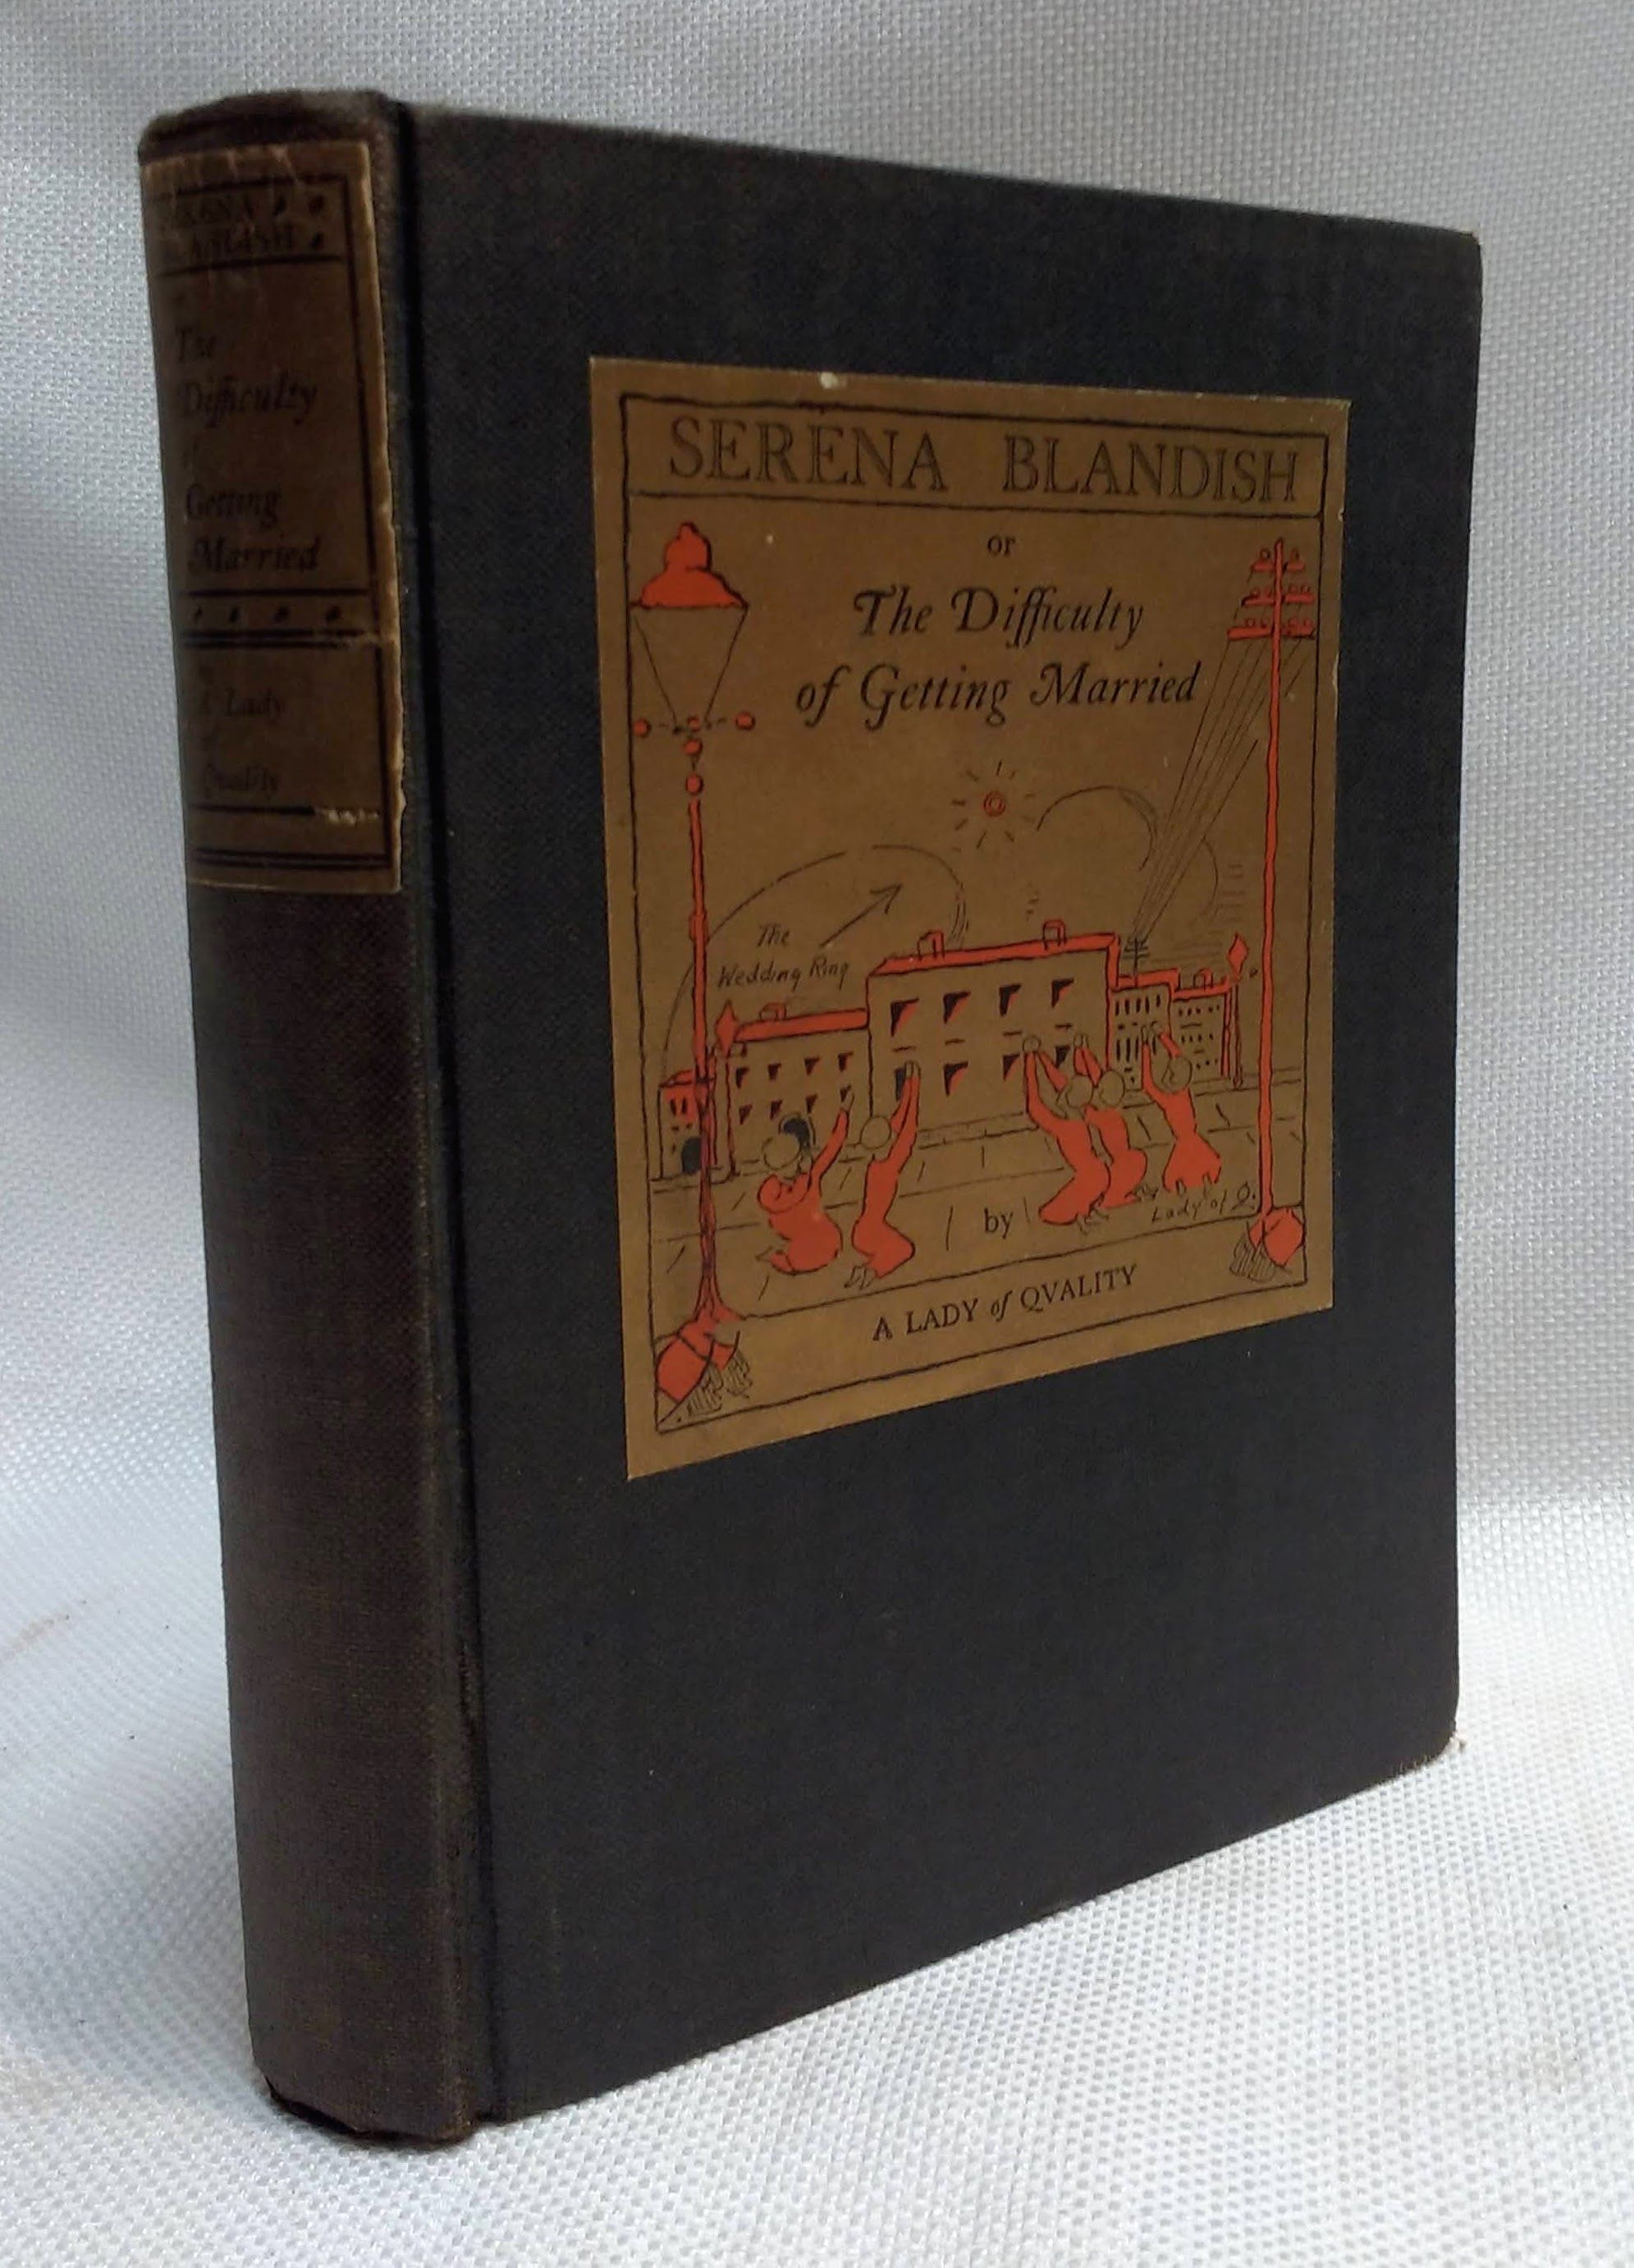 Serena Blandish or The Difficulty of Getting Married, [Bagnold, Enid] Lady of Quality, A